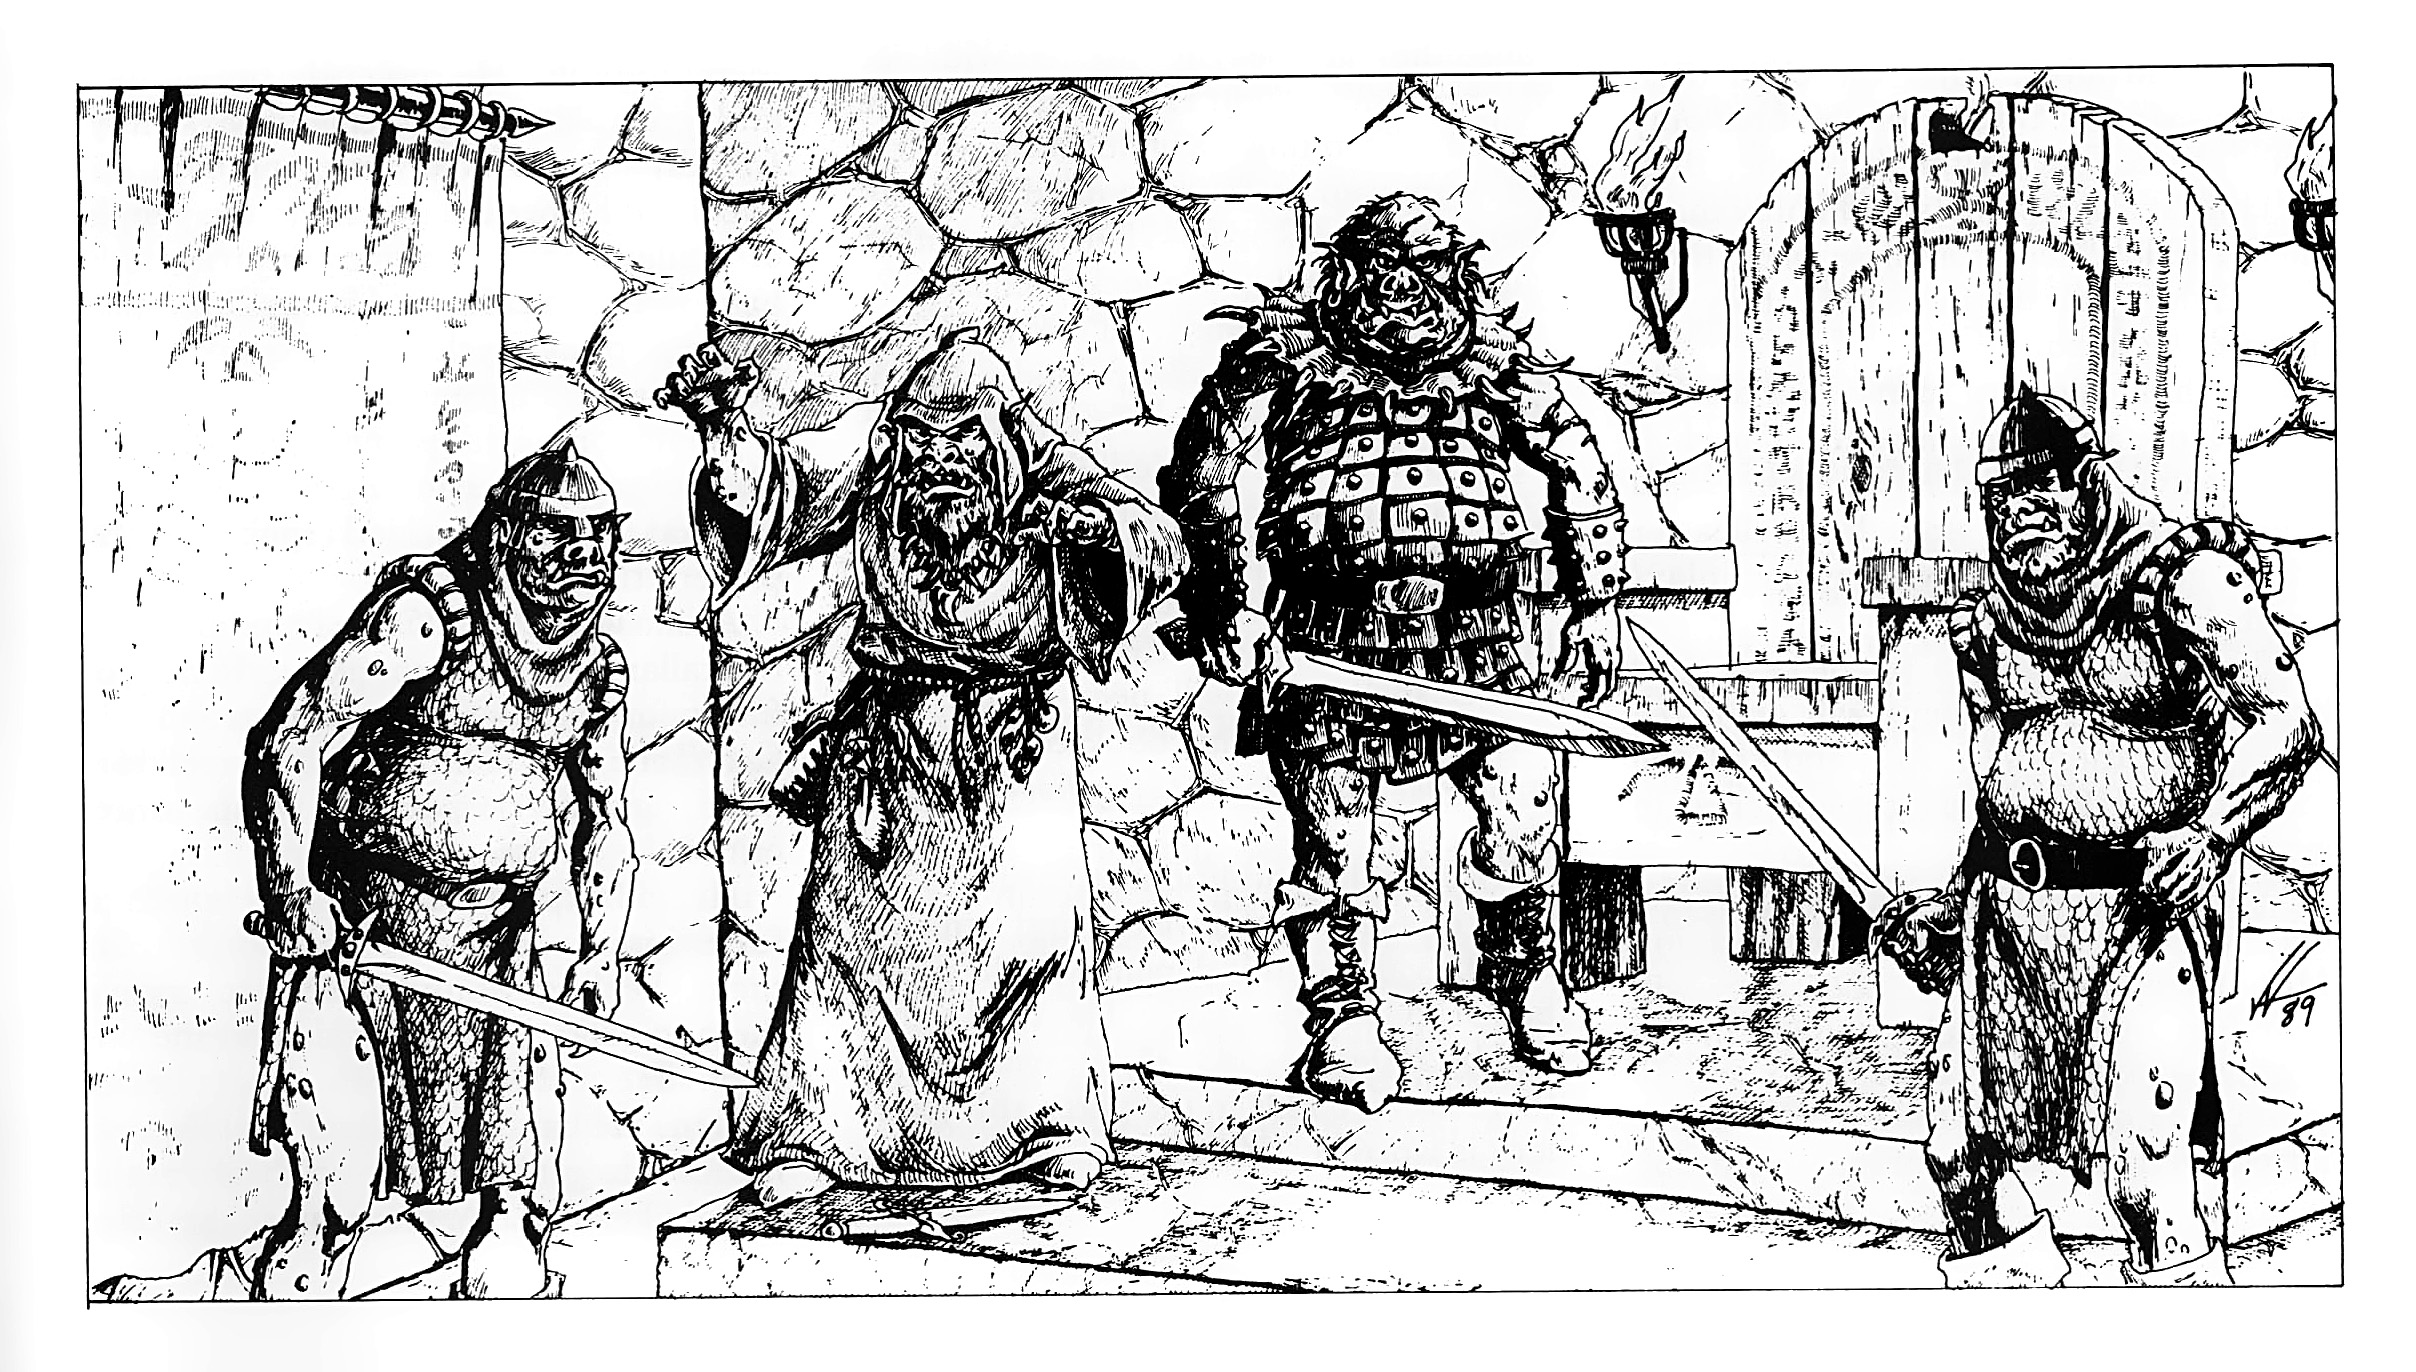 orc Antro degli orchi- by Valerie Valusek TSR - Introductory Adventure, King's Festival (1989) © Wizards of the Coast & Hasbro